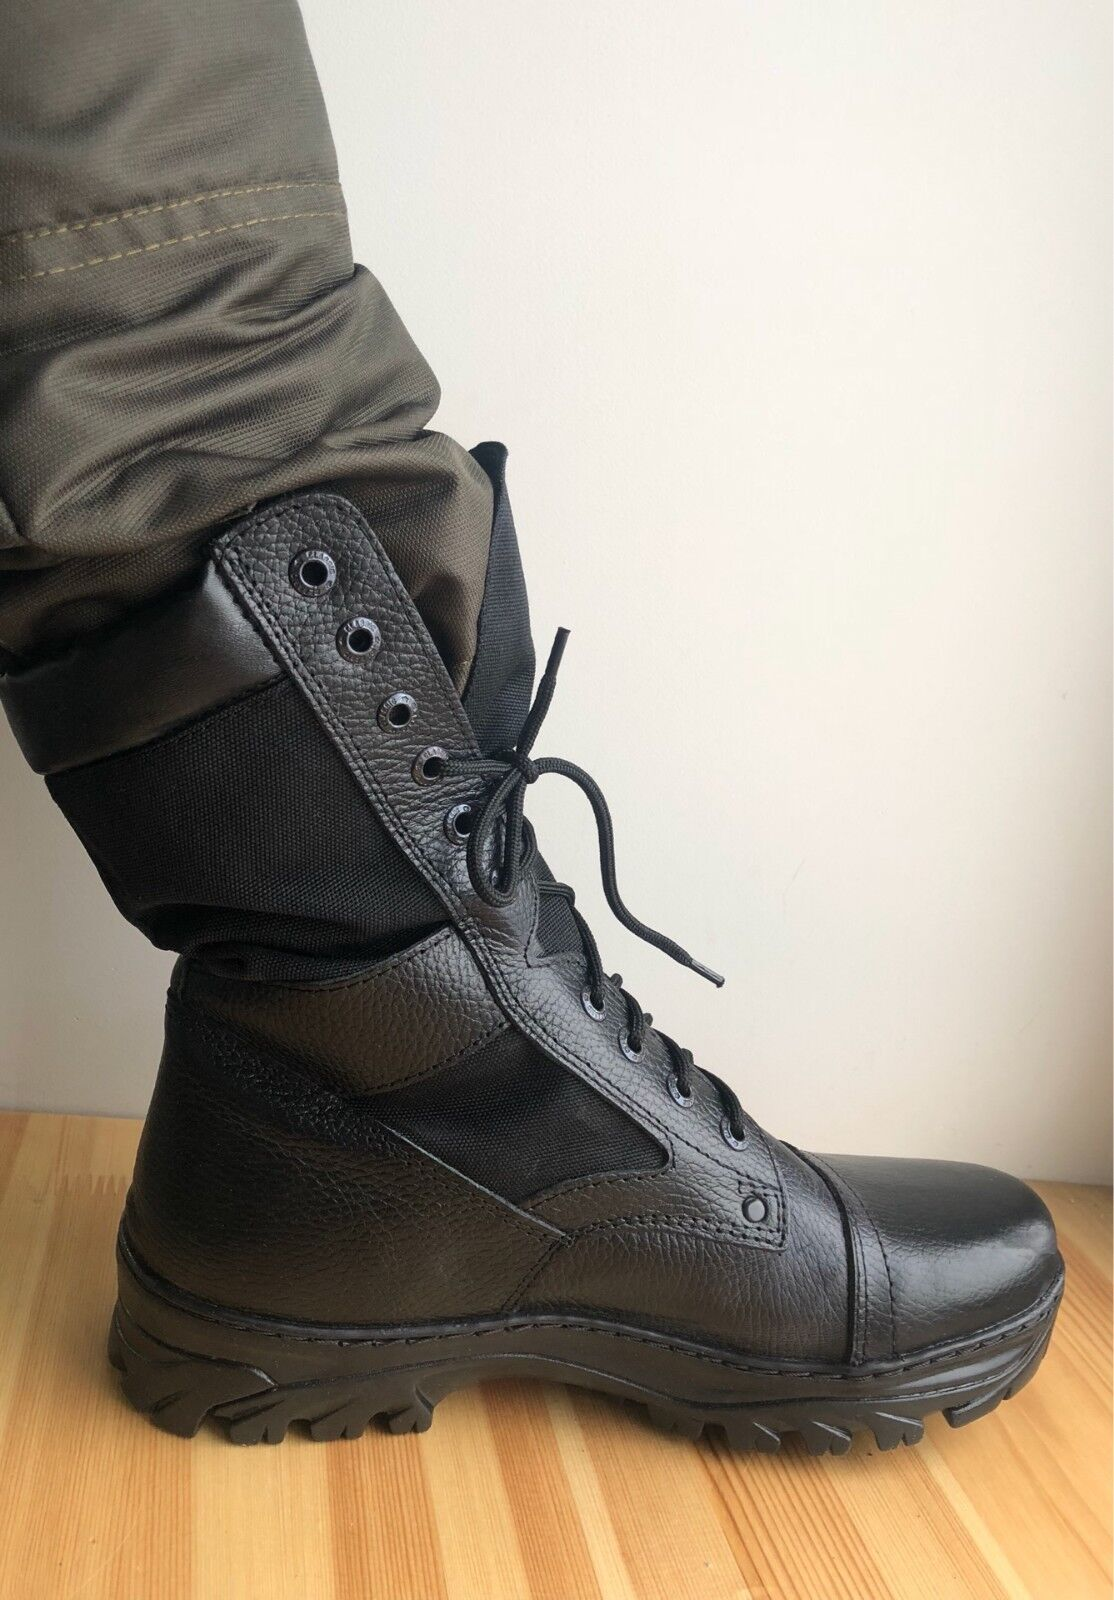 Russian military  genuine leather summer boots NATO CORDURA soldier boots